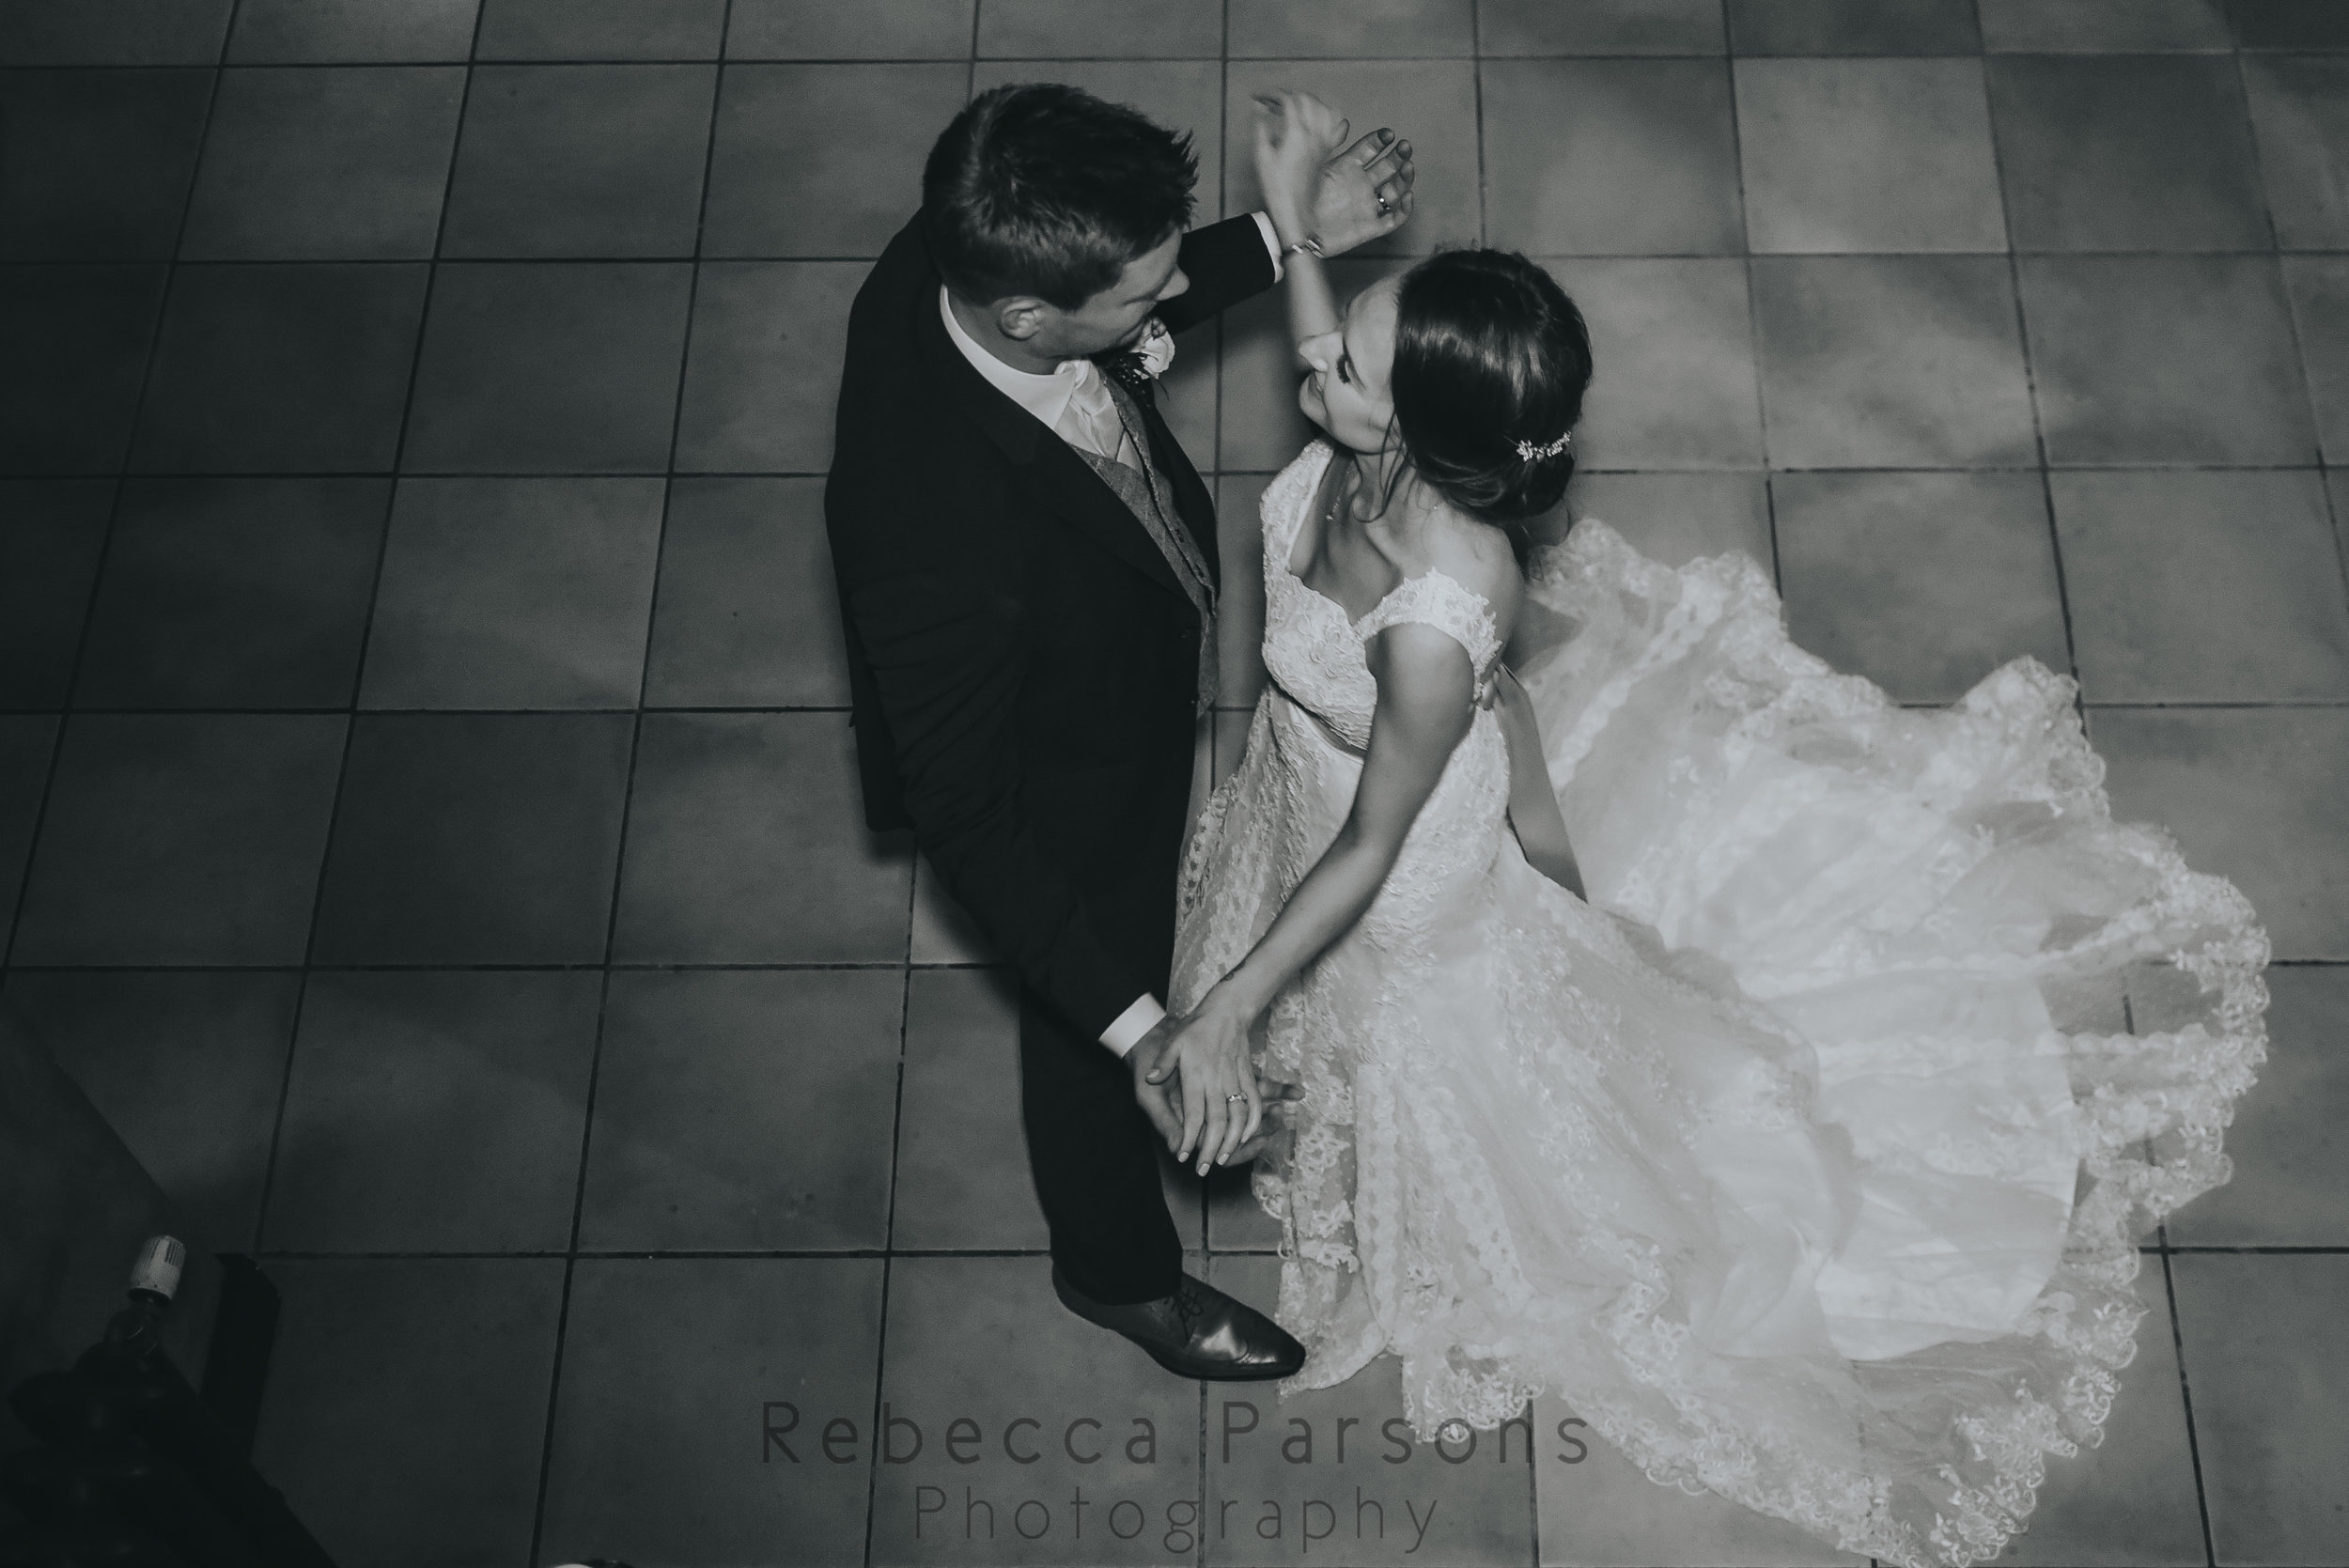 The bride and groom holding hands in black and white